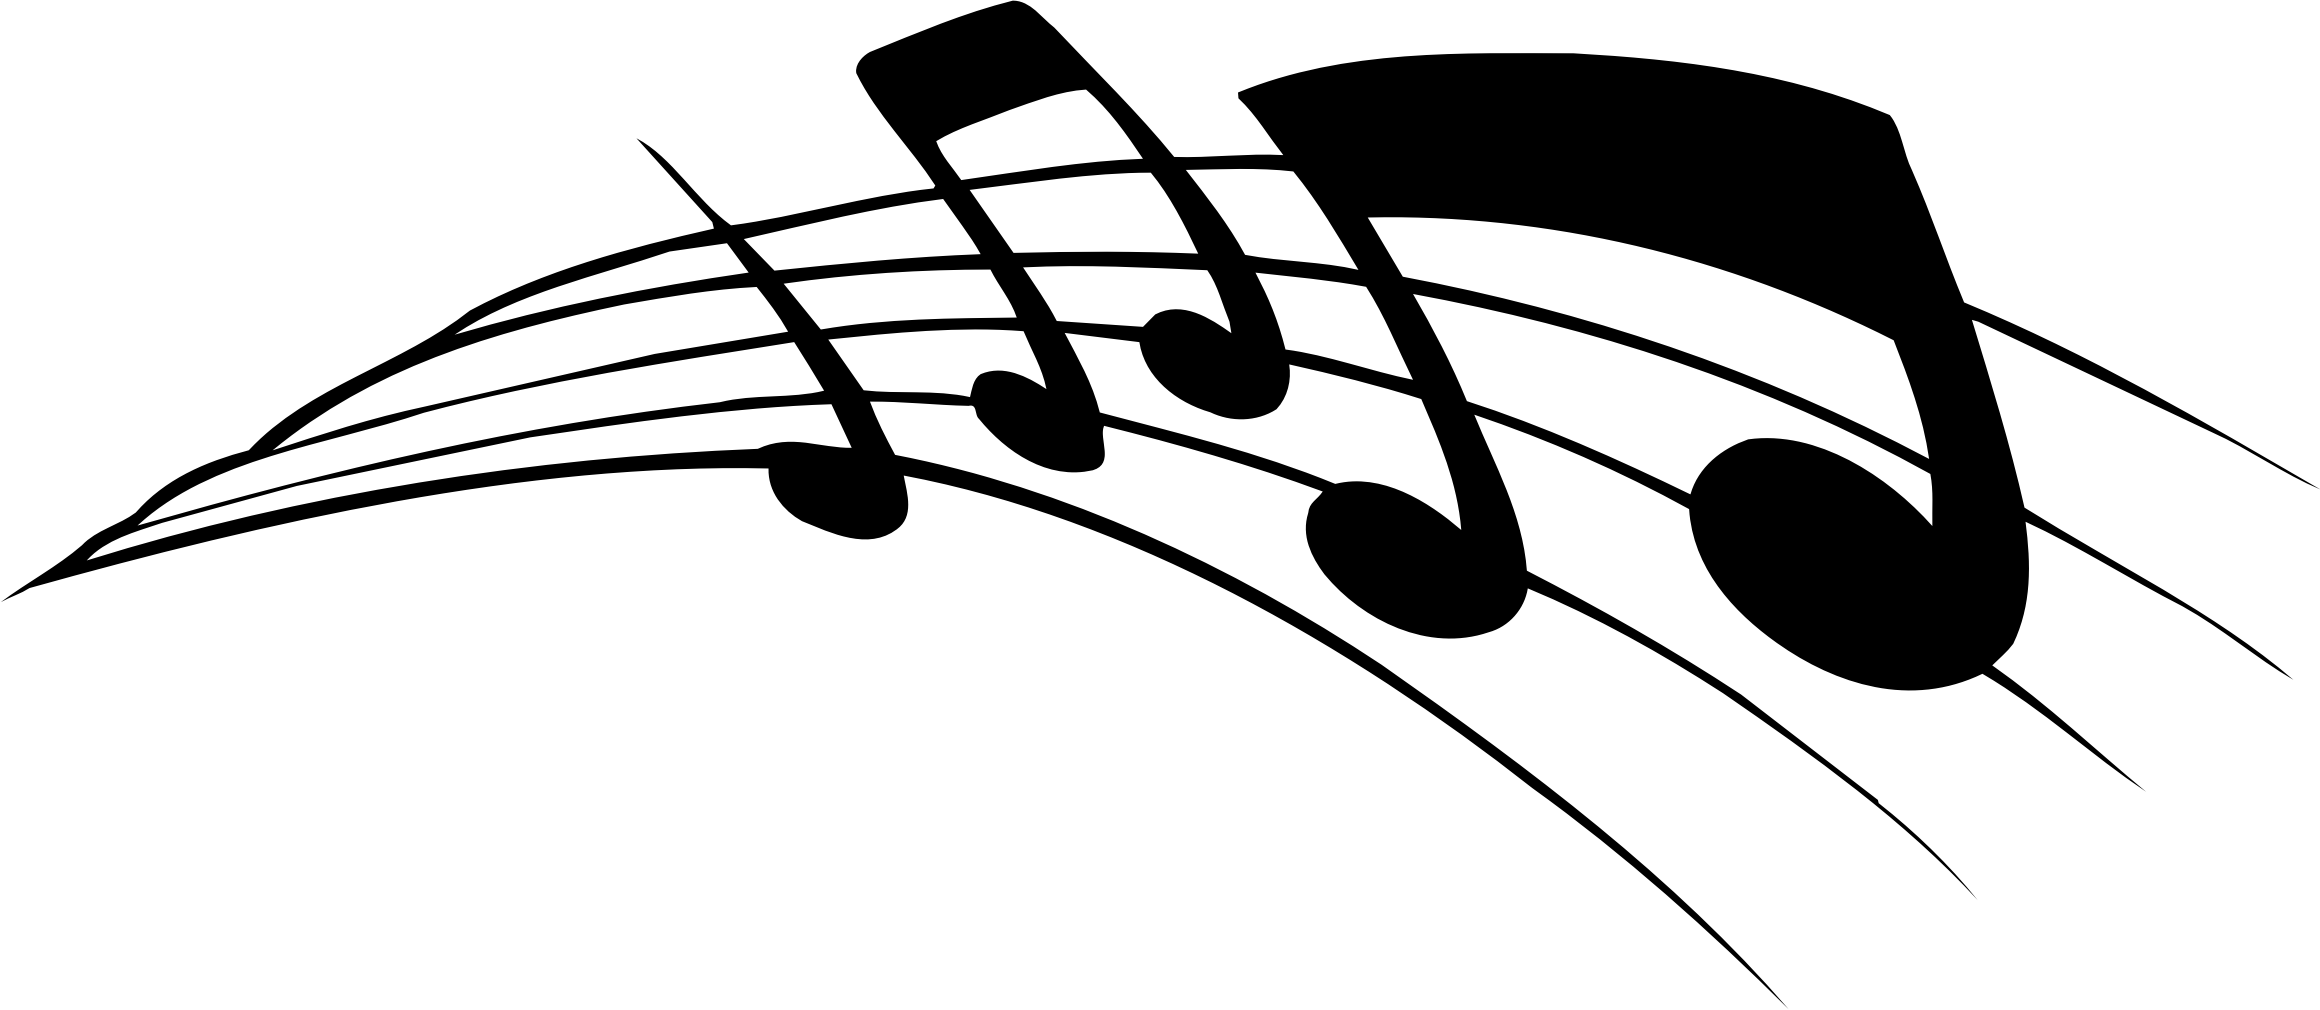 2320x1010 Music Staff Clipart Raseone Music Notes